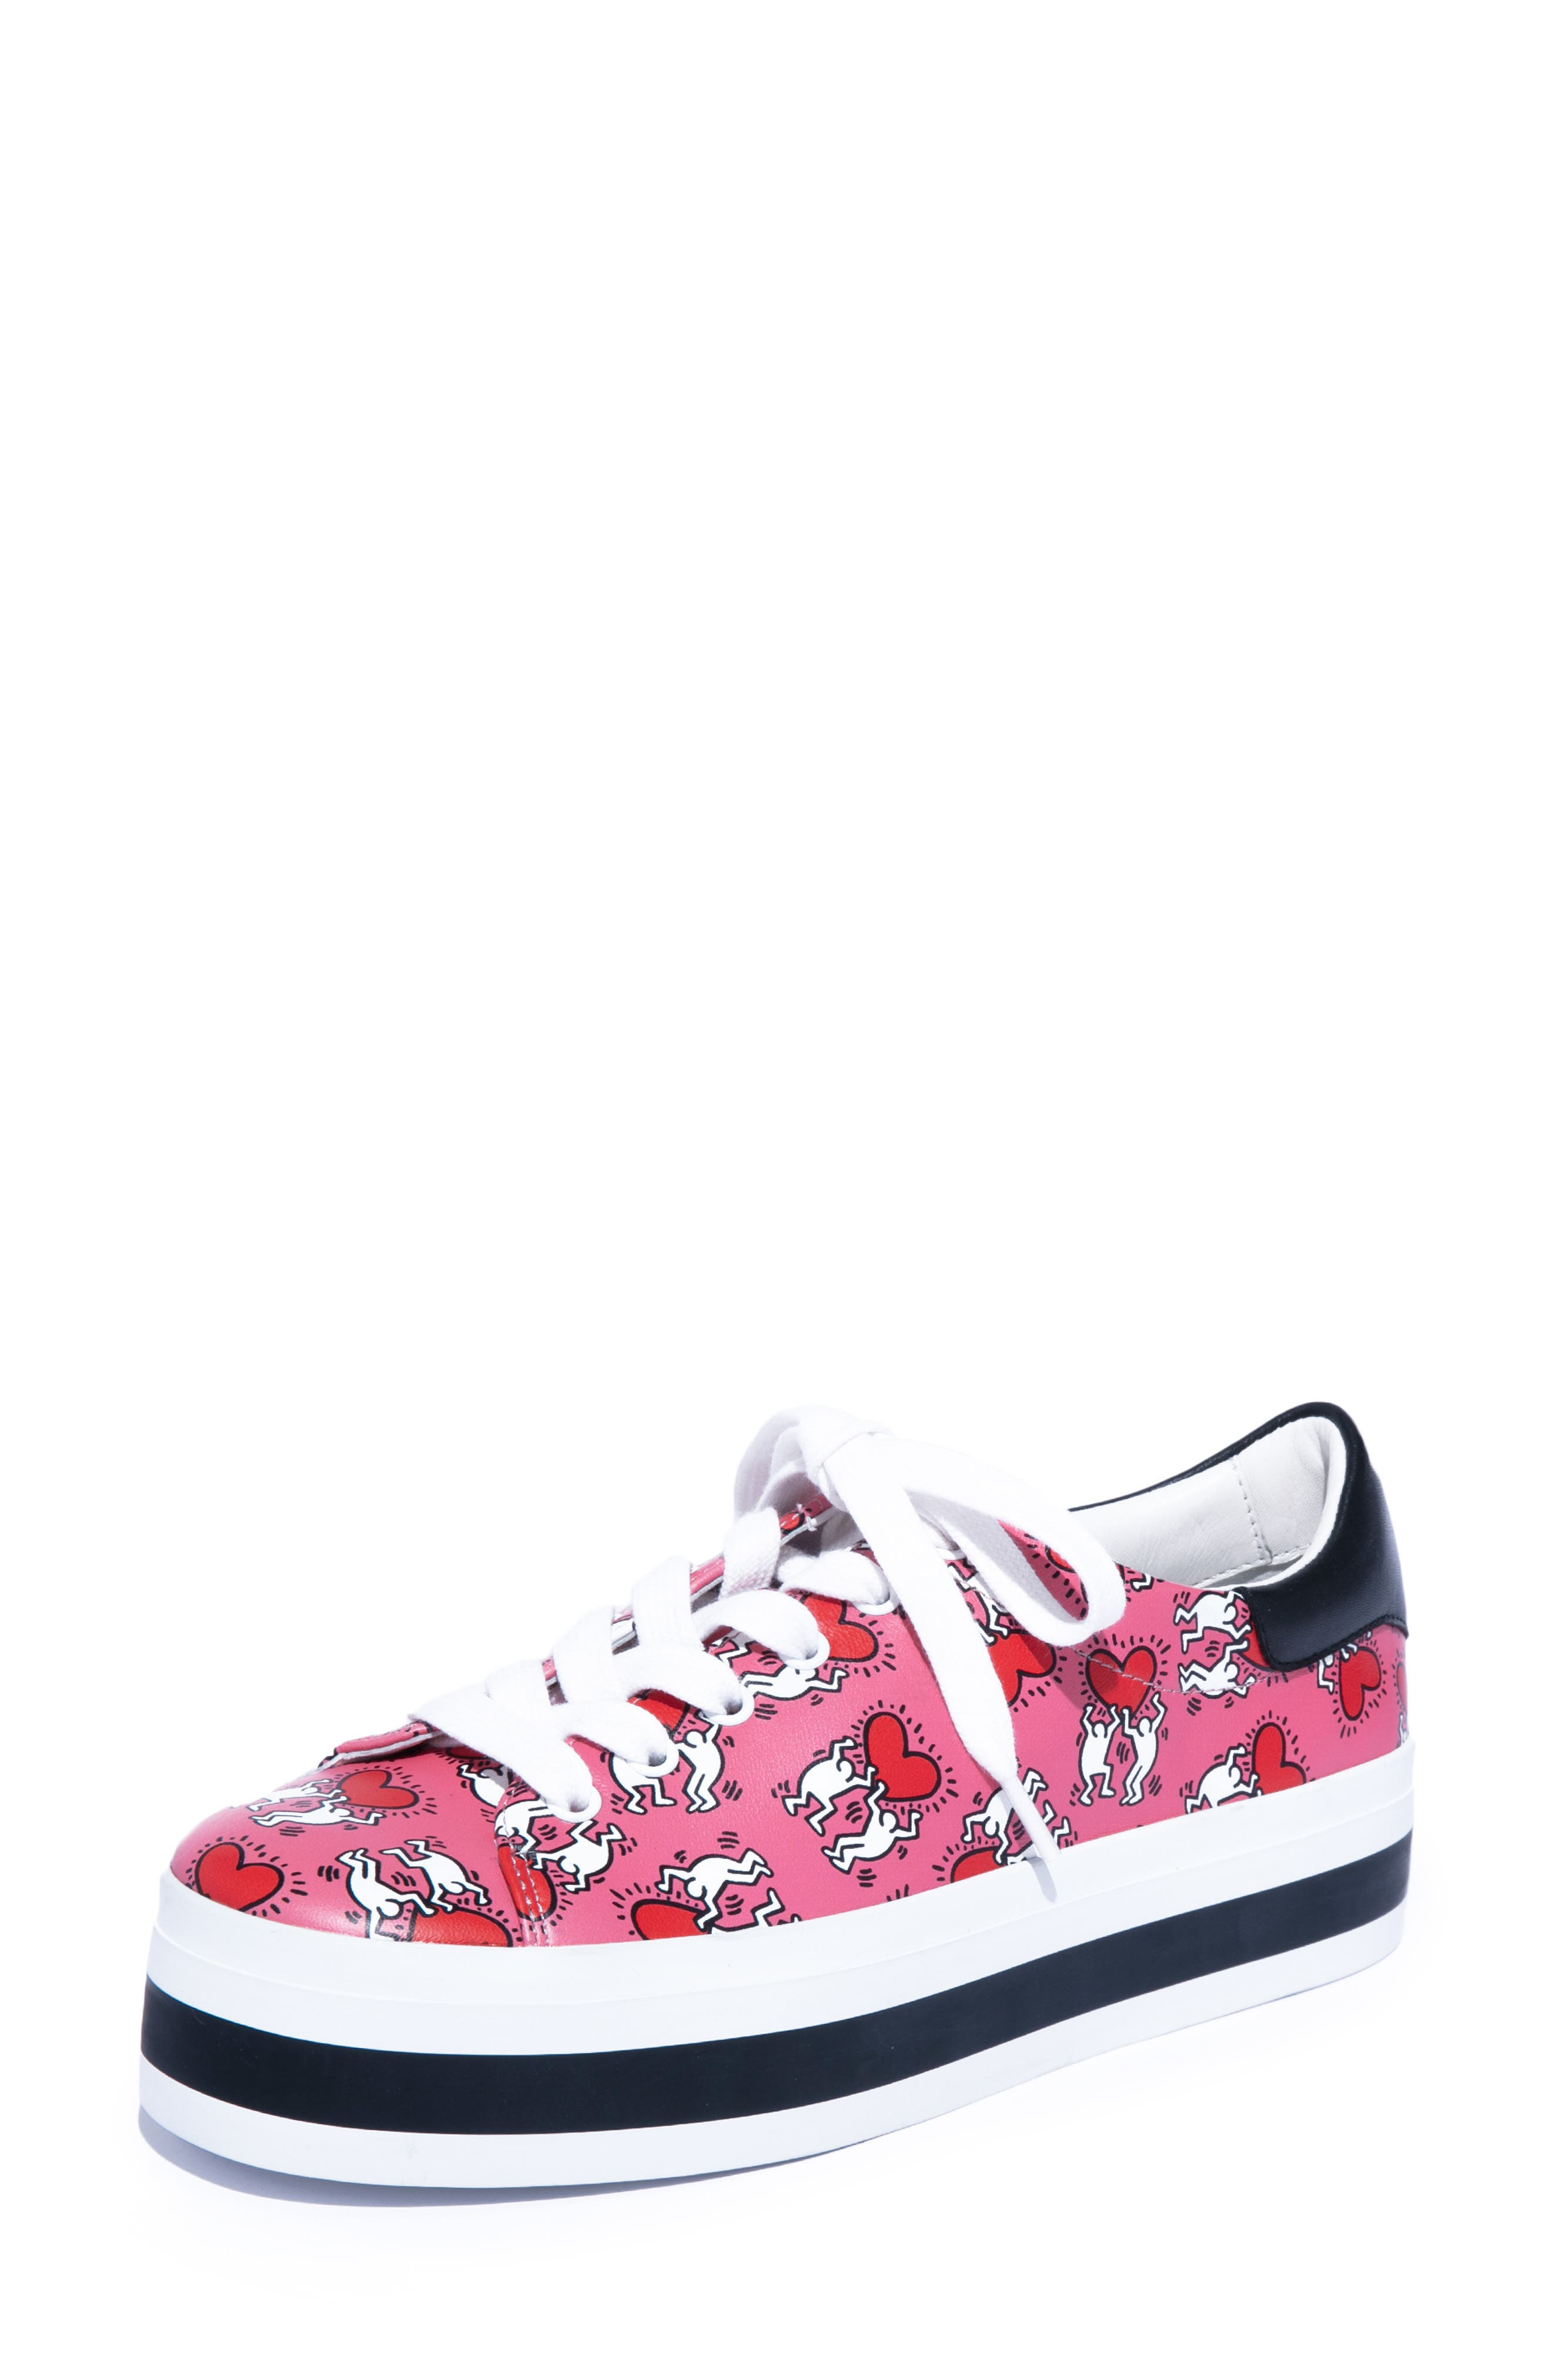 Keith Haring X Alice + Olivia Ezra Love Print Leather Platform Sneakers in Pink/ Red Hearts